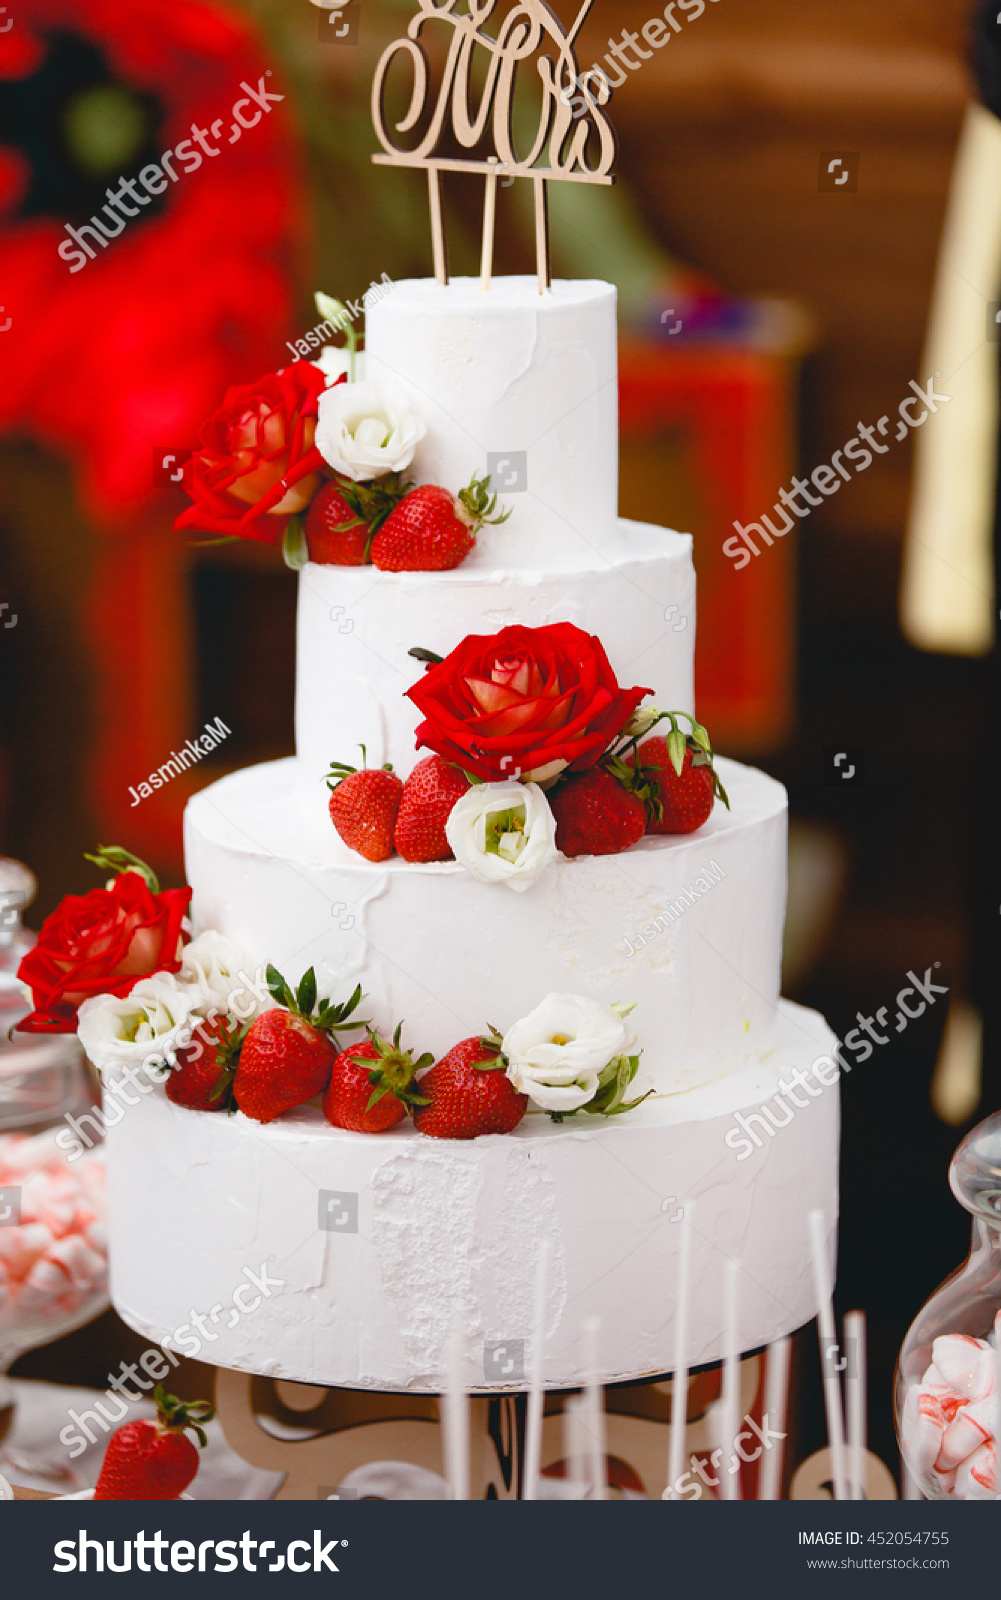 White Wedding Cake With Flowers And Fruits Ez Canvas